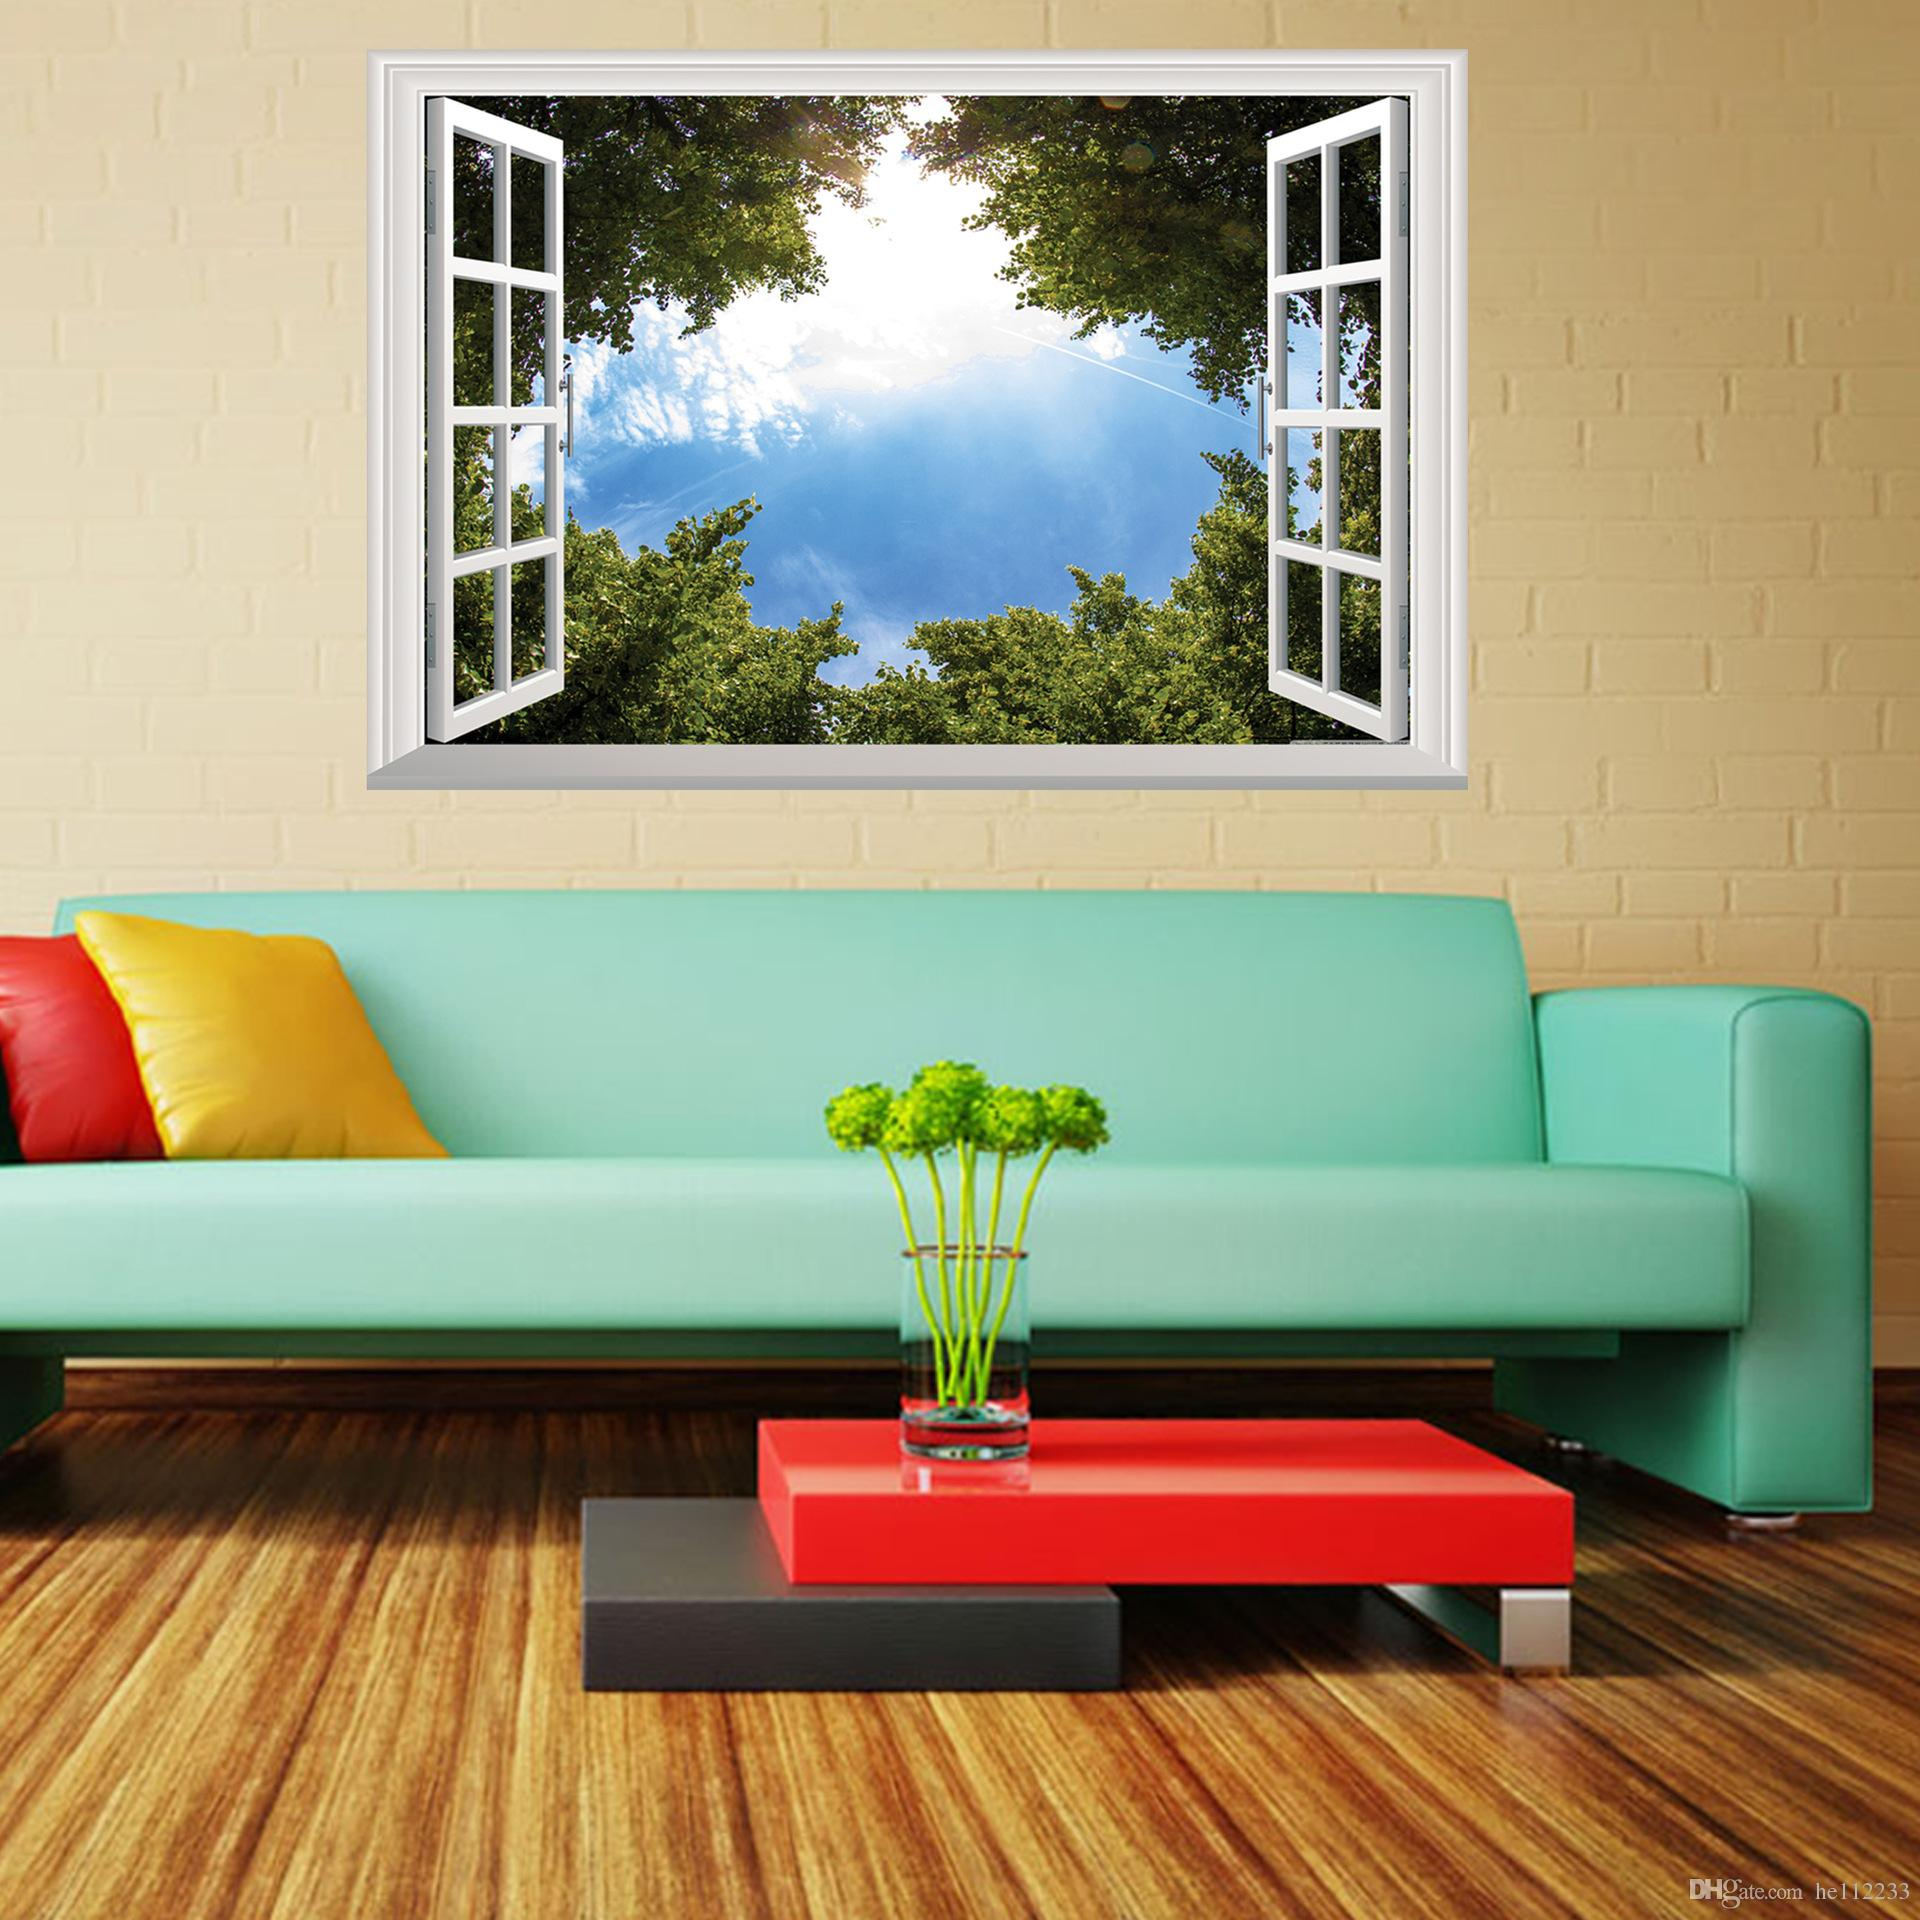 Large Wall Pictures For Living Room: Green Tree Blue Sky 3D Wall Poster Living Room Bedroom